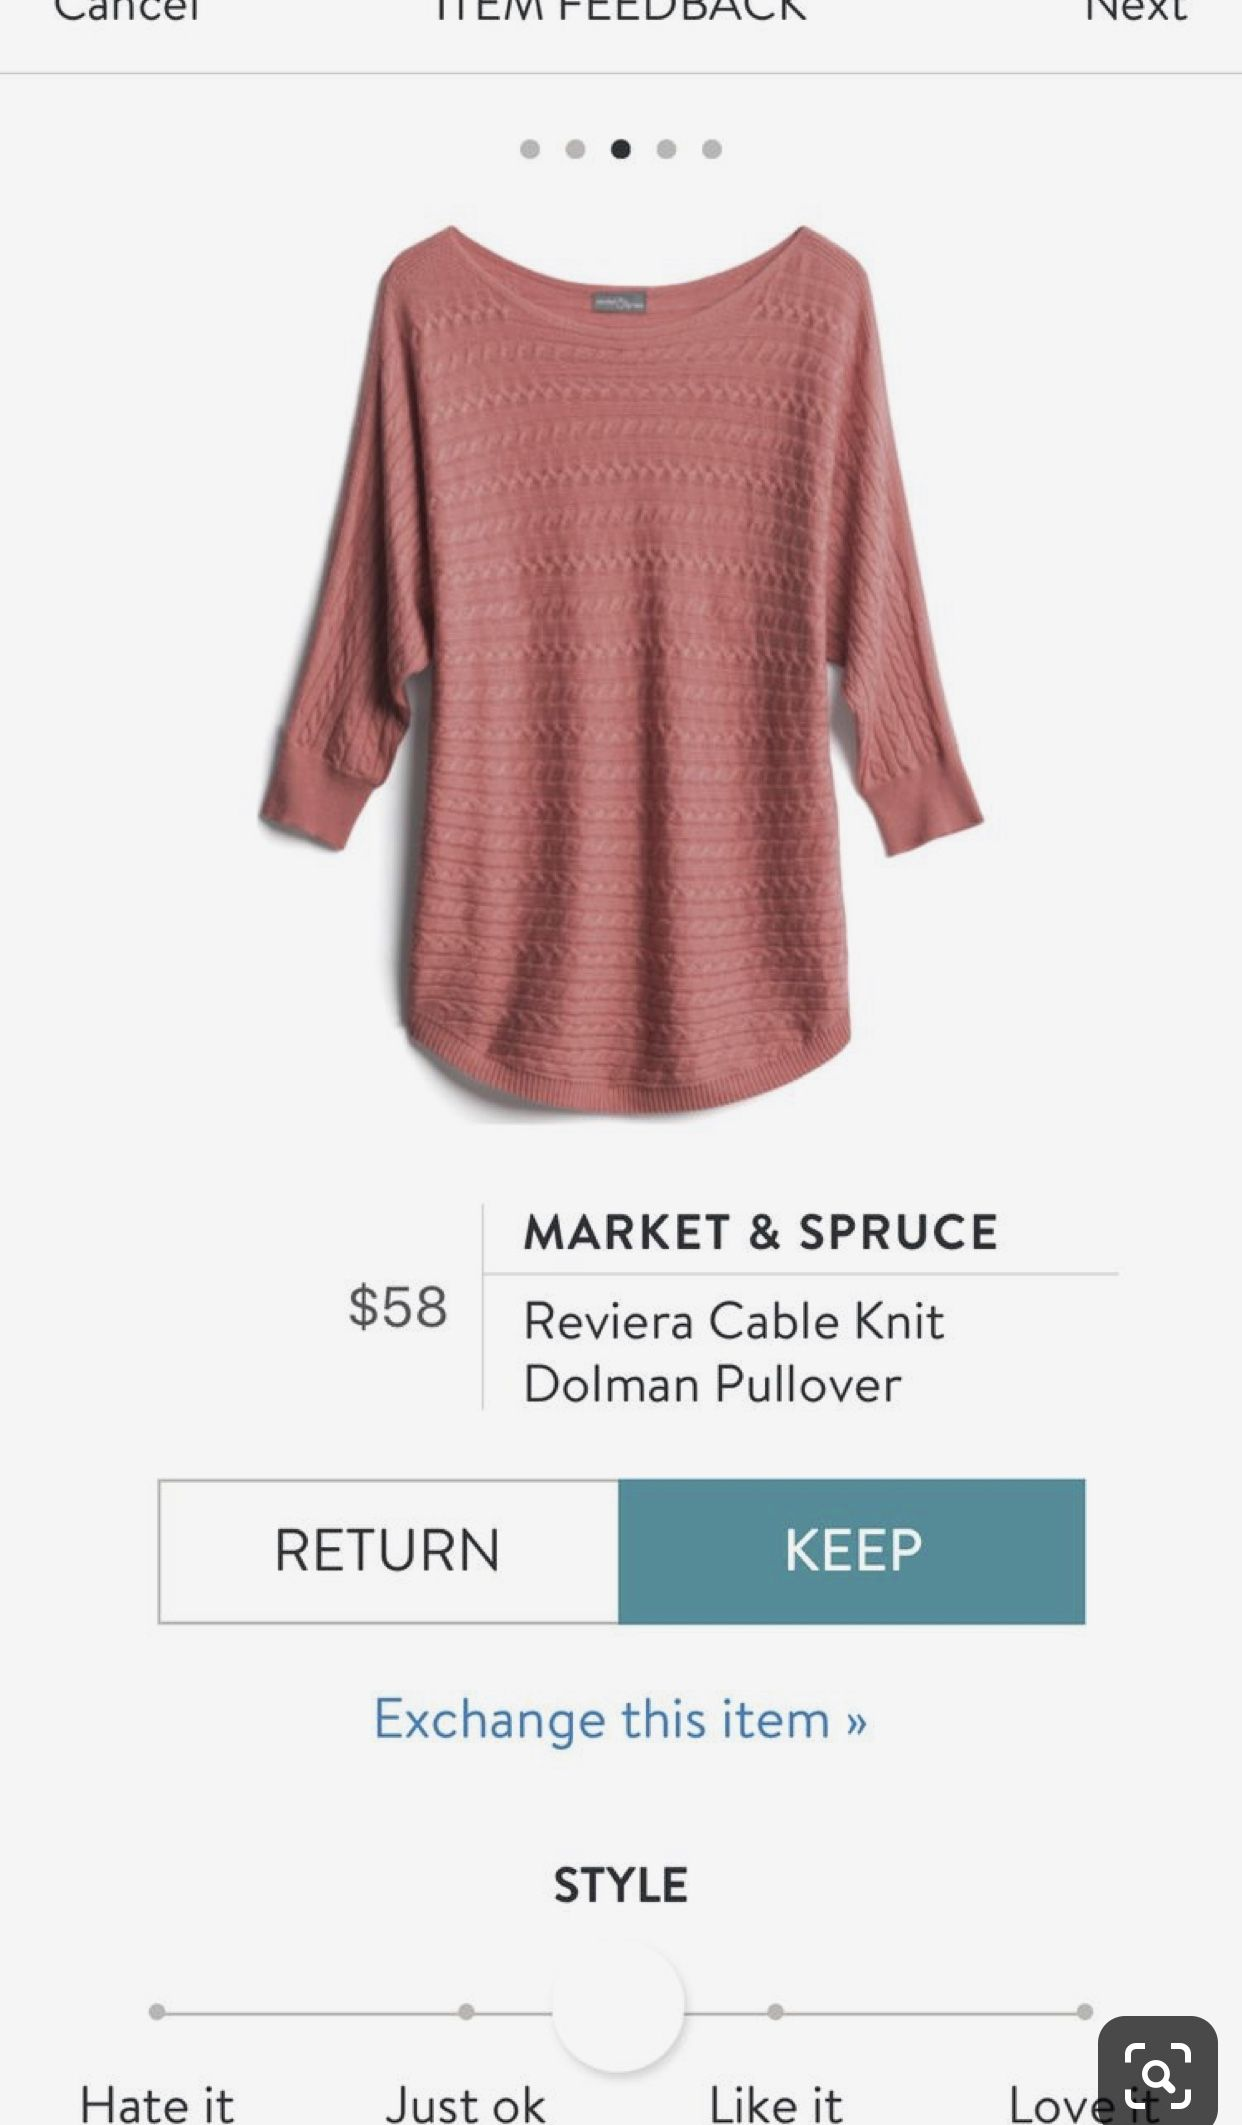 Stitch Fix Market & Spruce Reviera Cable Knit Dolman Pullover || Stitch Fix Sweater #stitchfix #stitchfixinfluencer #stitchfix